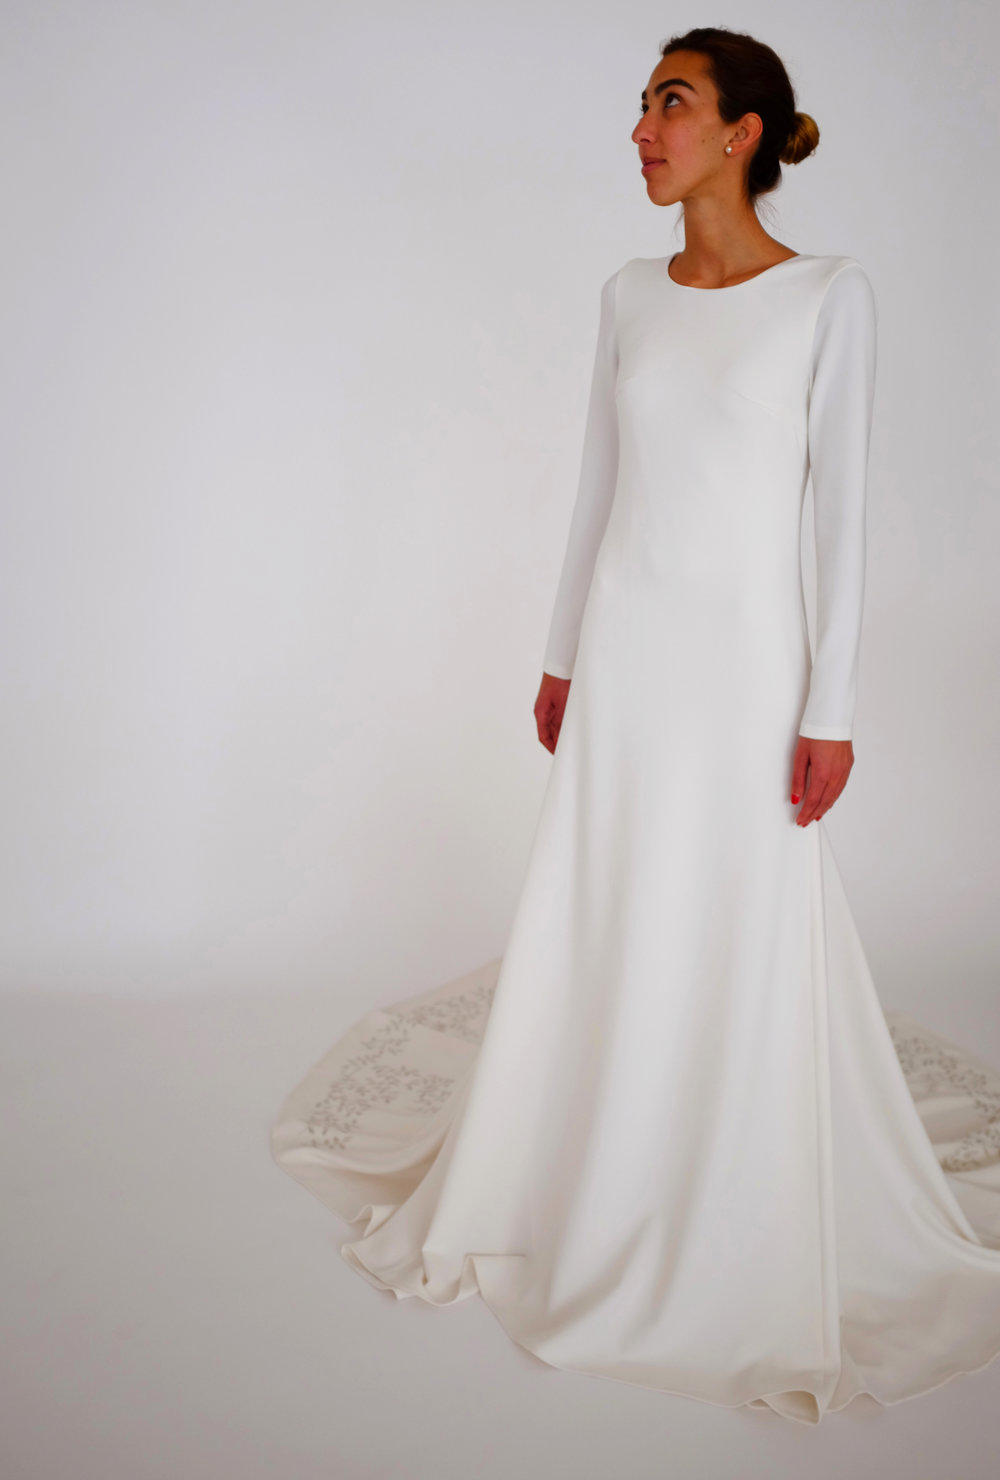 claudia toffano bridal gown.JPG